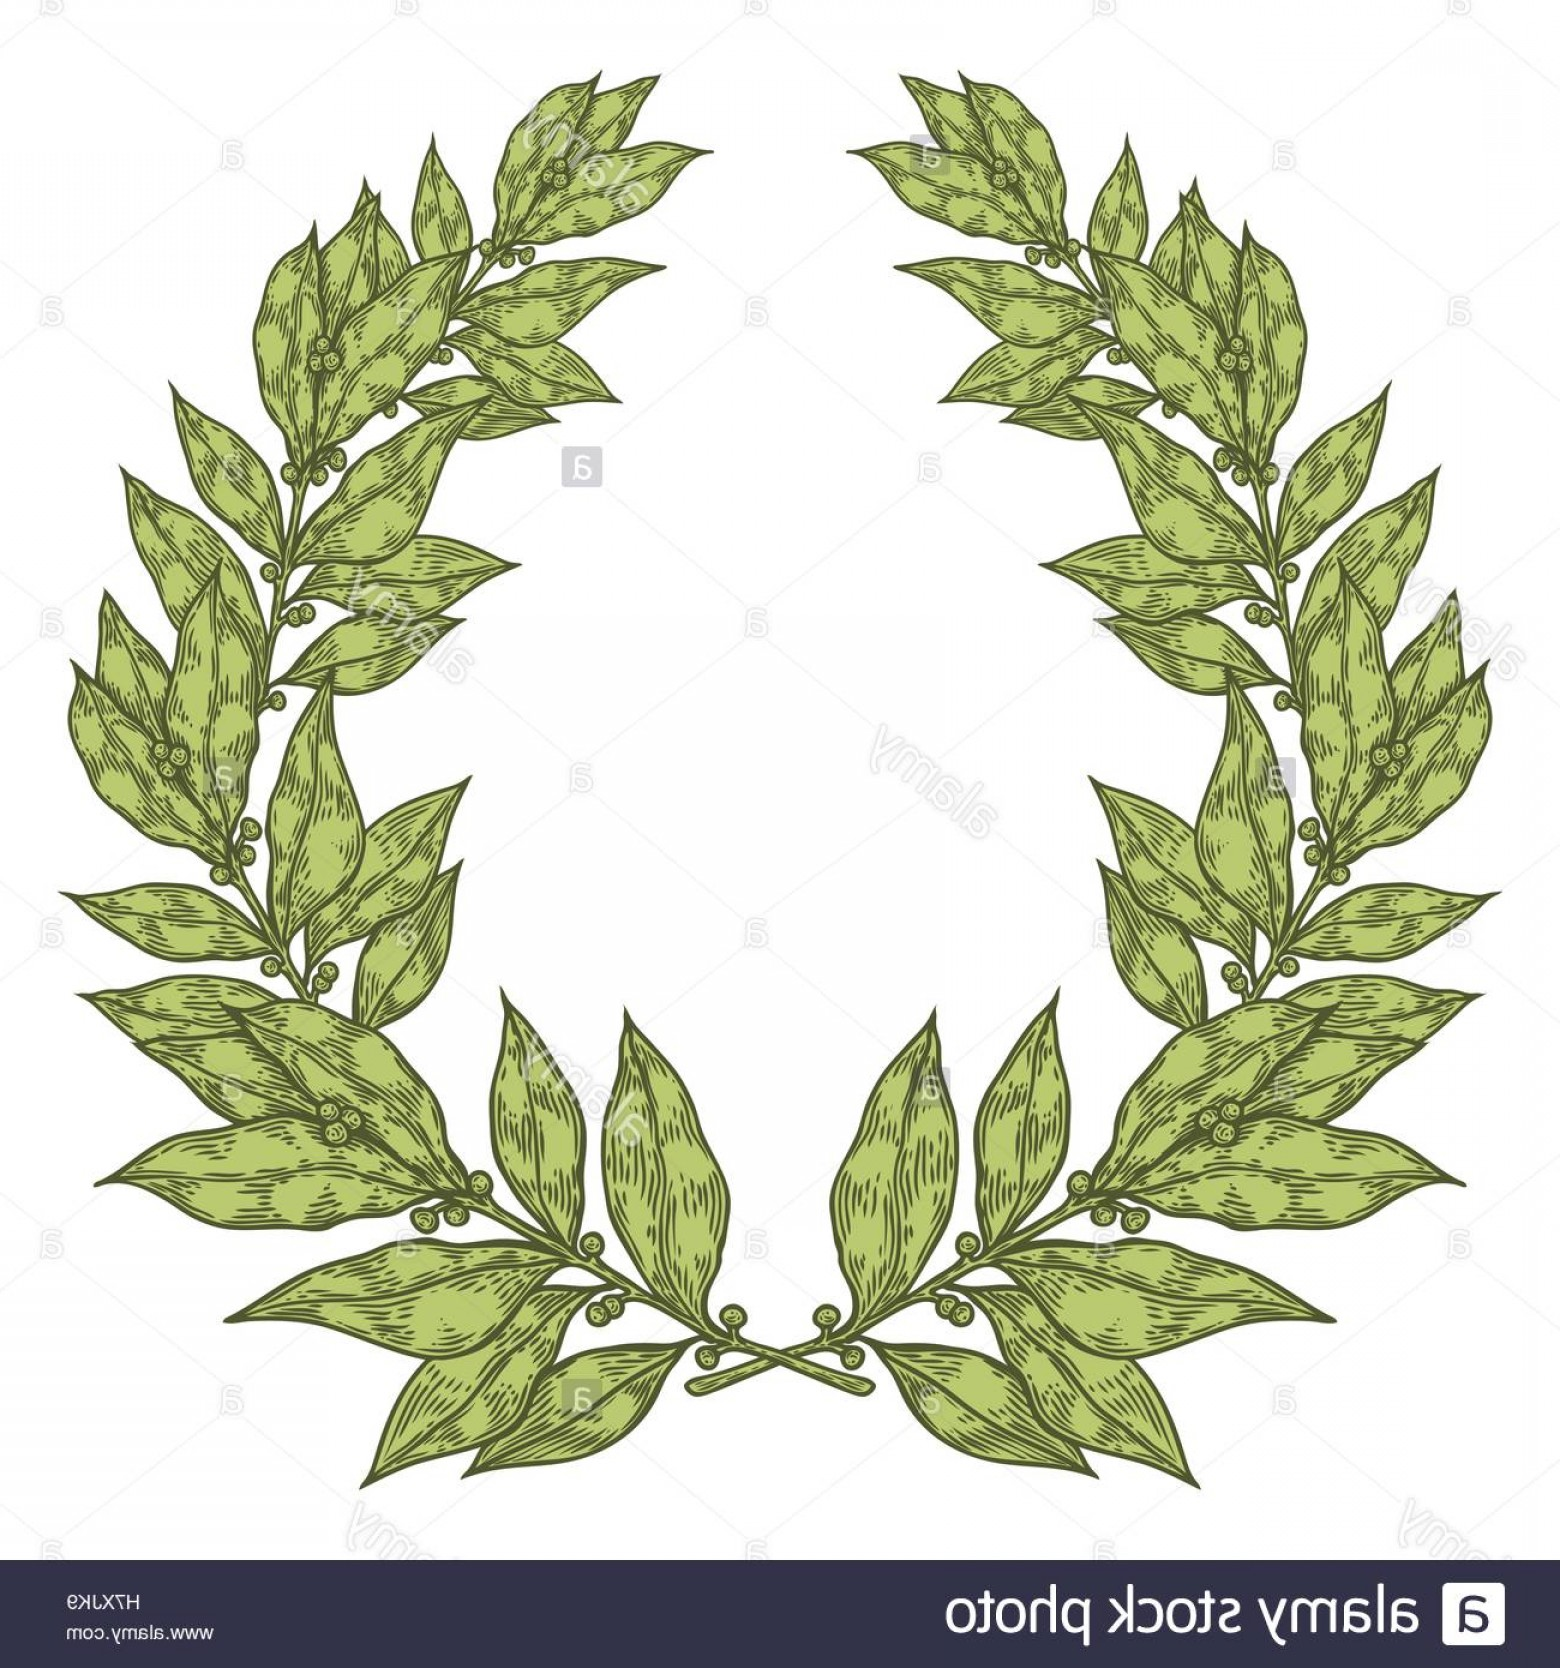 Green Bay Vector: Stock Photo Laurel Green Bay Leaf Hand Drawn Vector Illustration Vintage Decorative